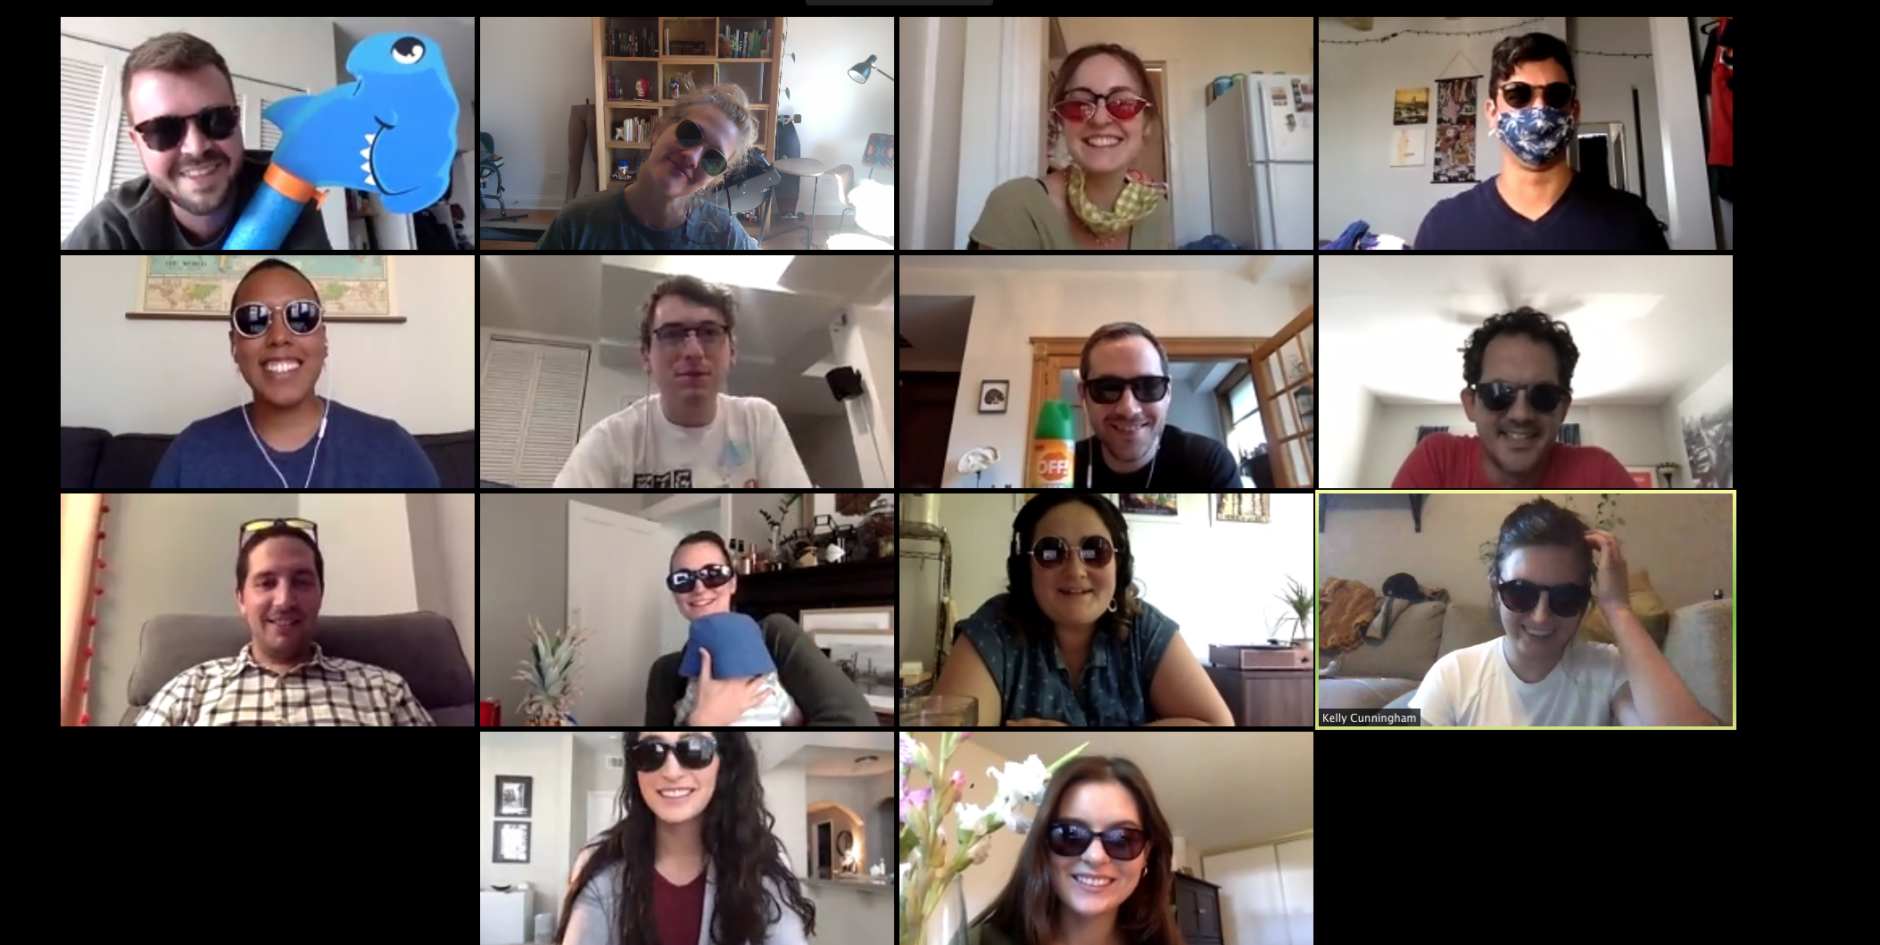 Screenshot of the Fuzzy Math Team on a Zoom call all wearing sunglasses.